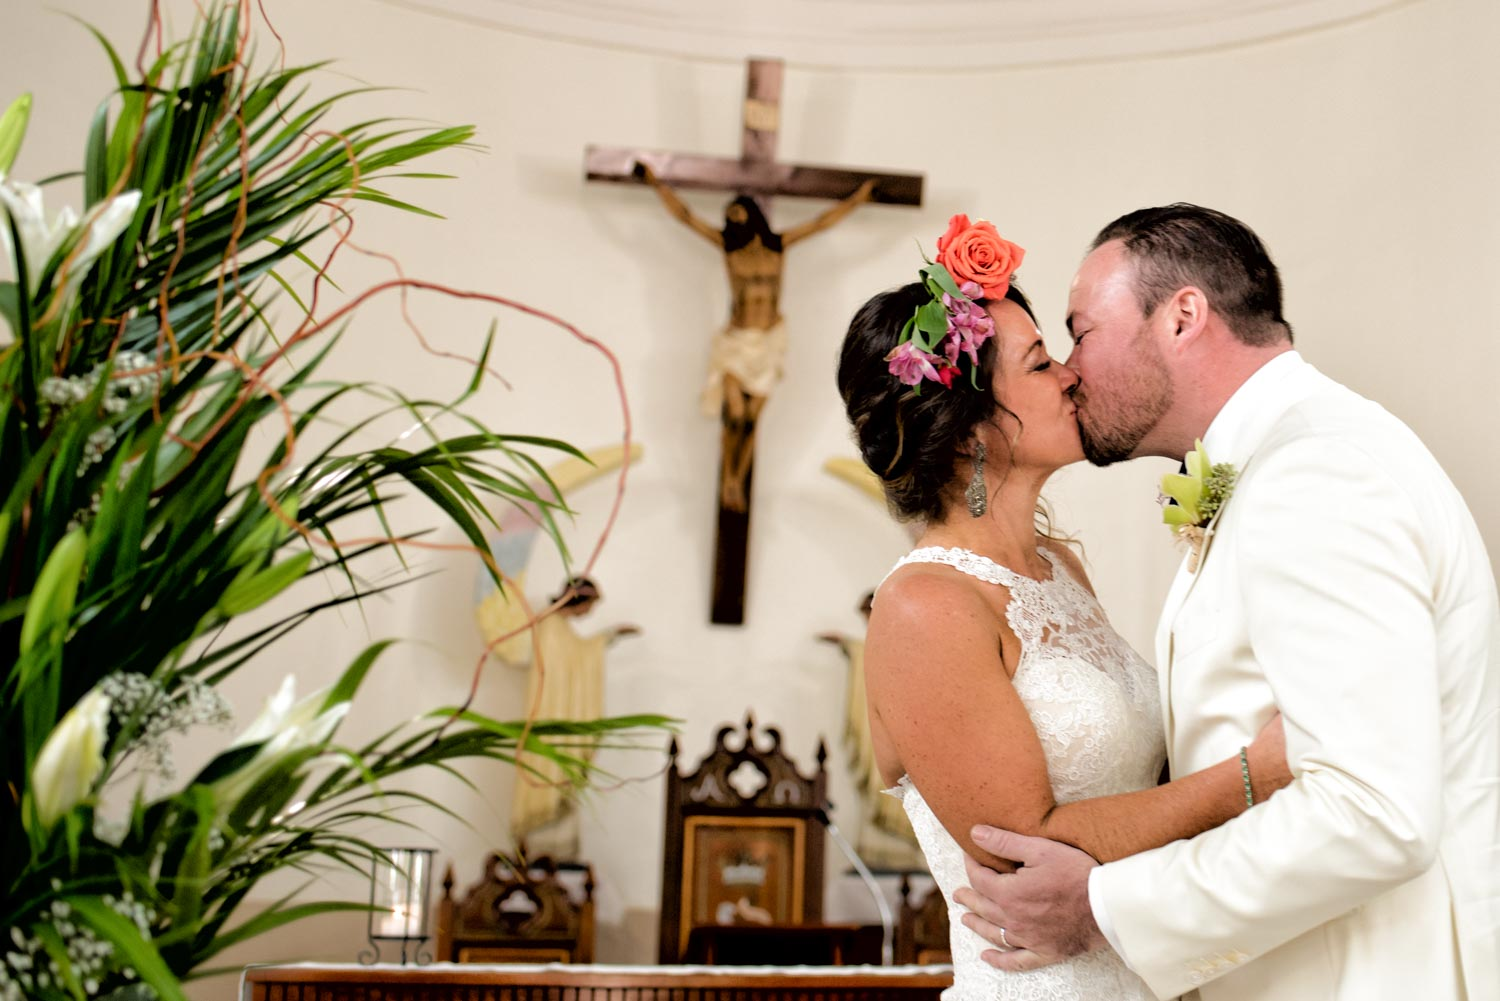 The bride and grooms first kiss in from of a catholic cross inside the church.